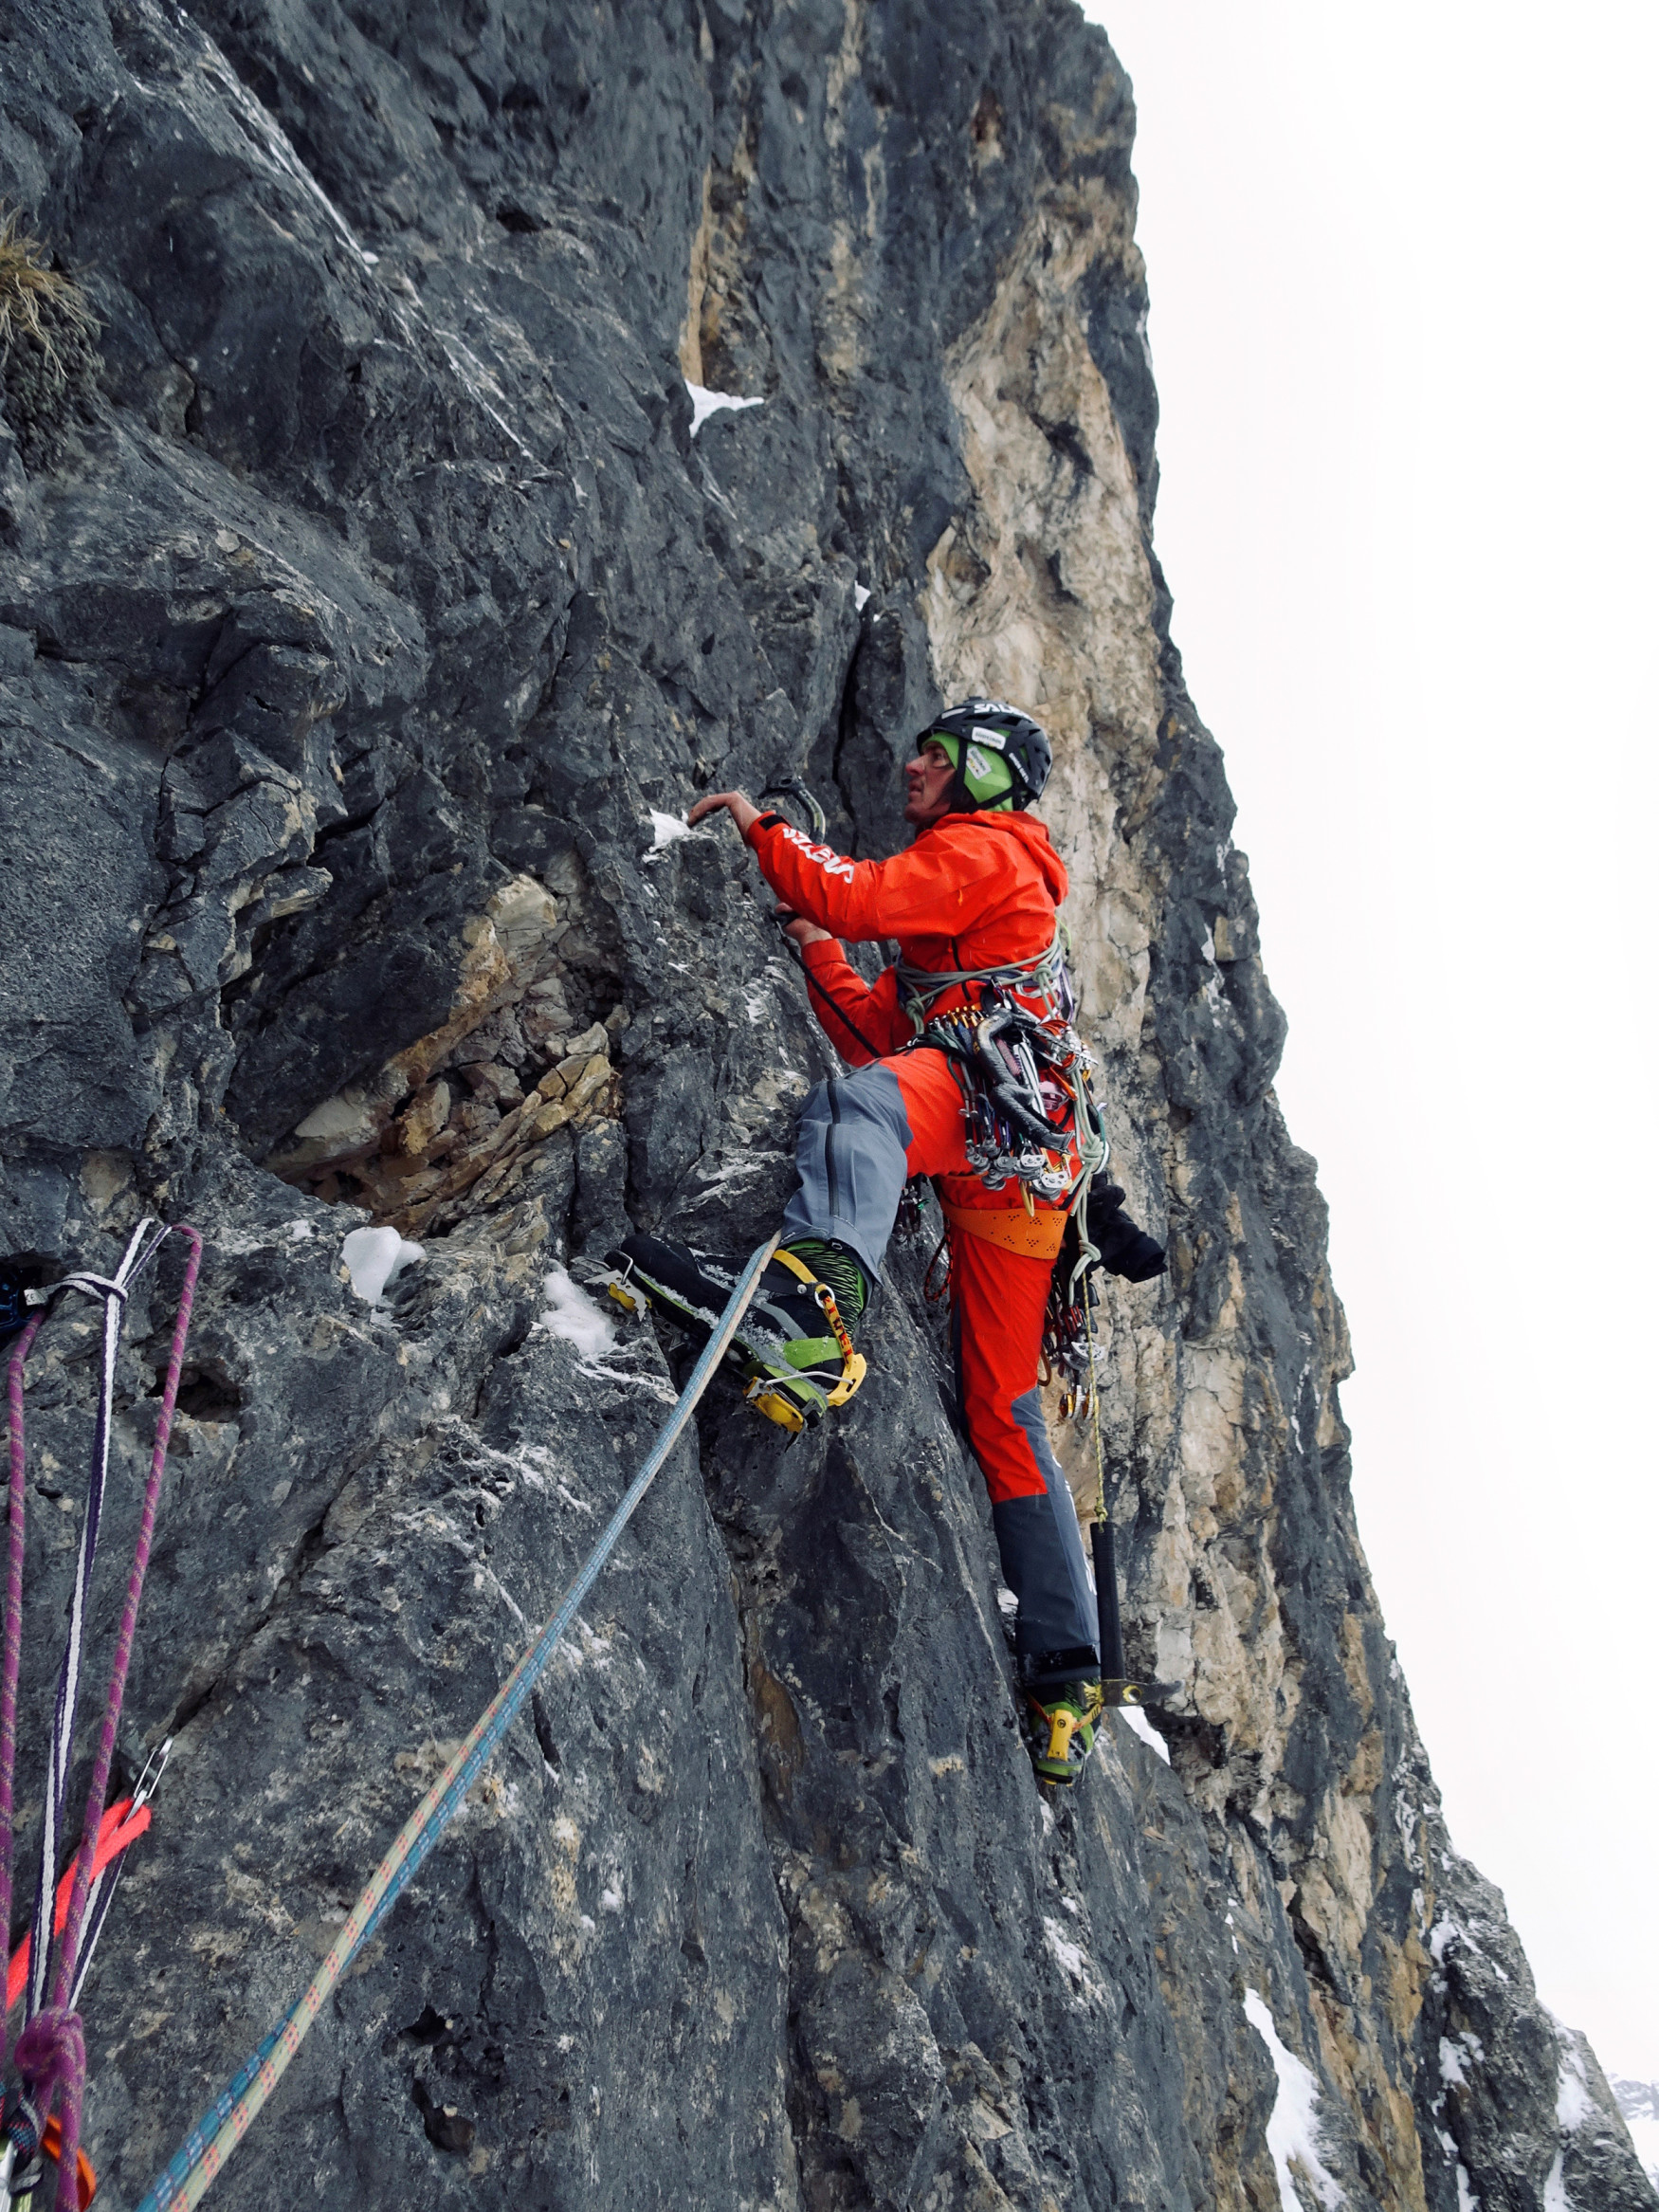 Climbers who are determined to reach the very top have to be able to rely on their technical gear. For Alpine mountaineering boots in particular, there are a wide range of requirements, depending on the terrain and weather conditions. The ALPINE ICE GTX is a boot that was developed jointly by the LOWA PRO Team and active Alpinists. The completely crampon-compatible boot is designed for both icy and rocky passages, with GORE-TEX Duratherm lining and a cushioning element integrated into the shank.